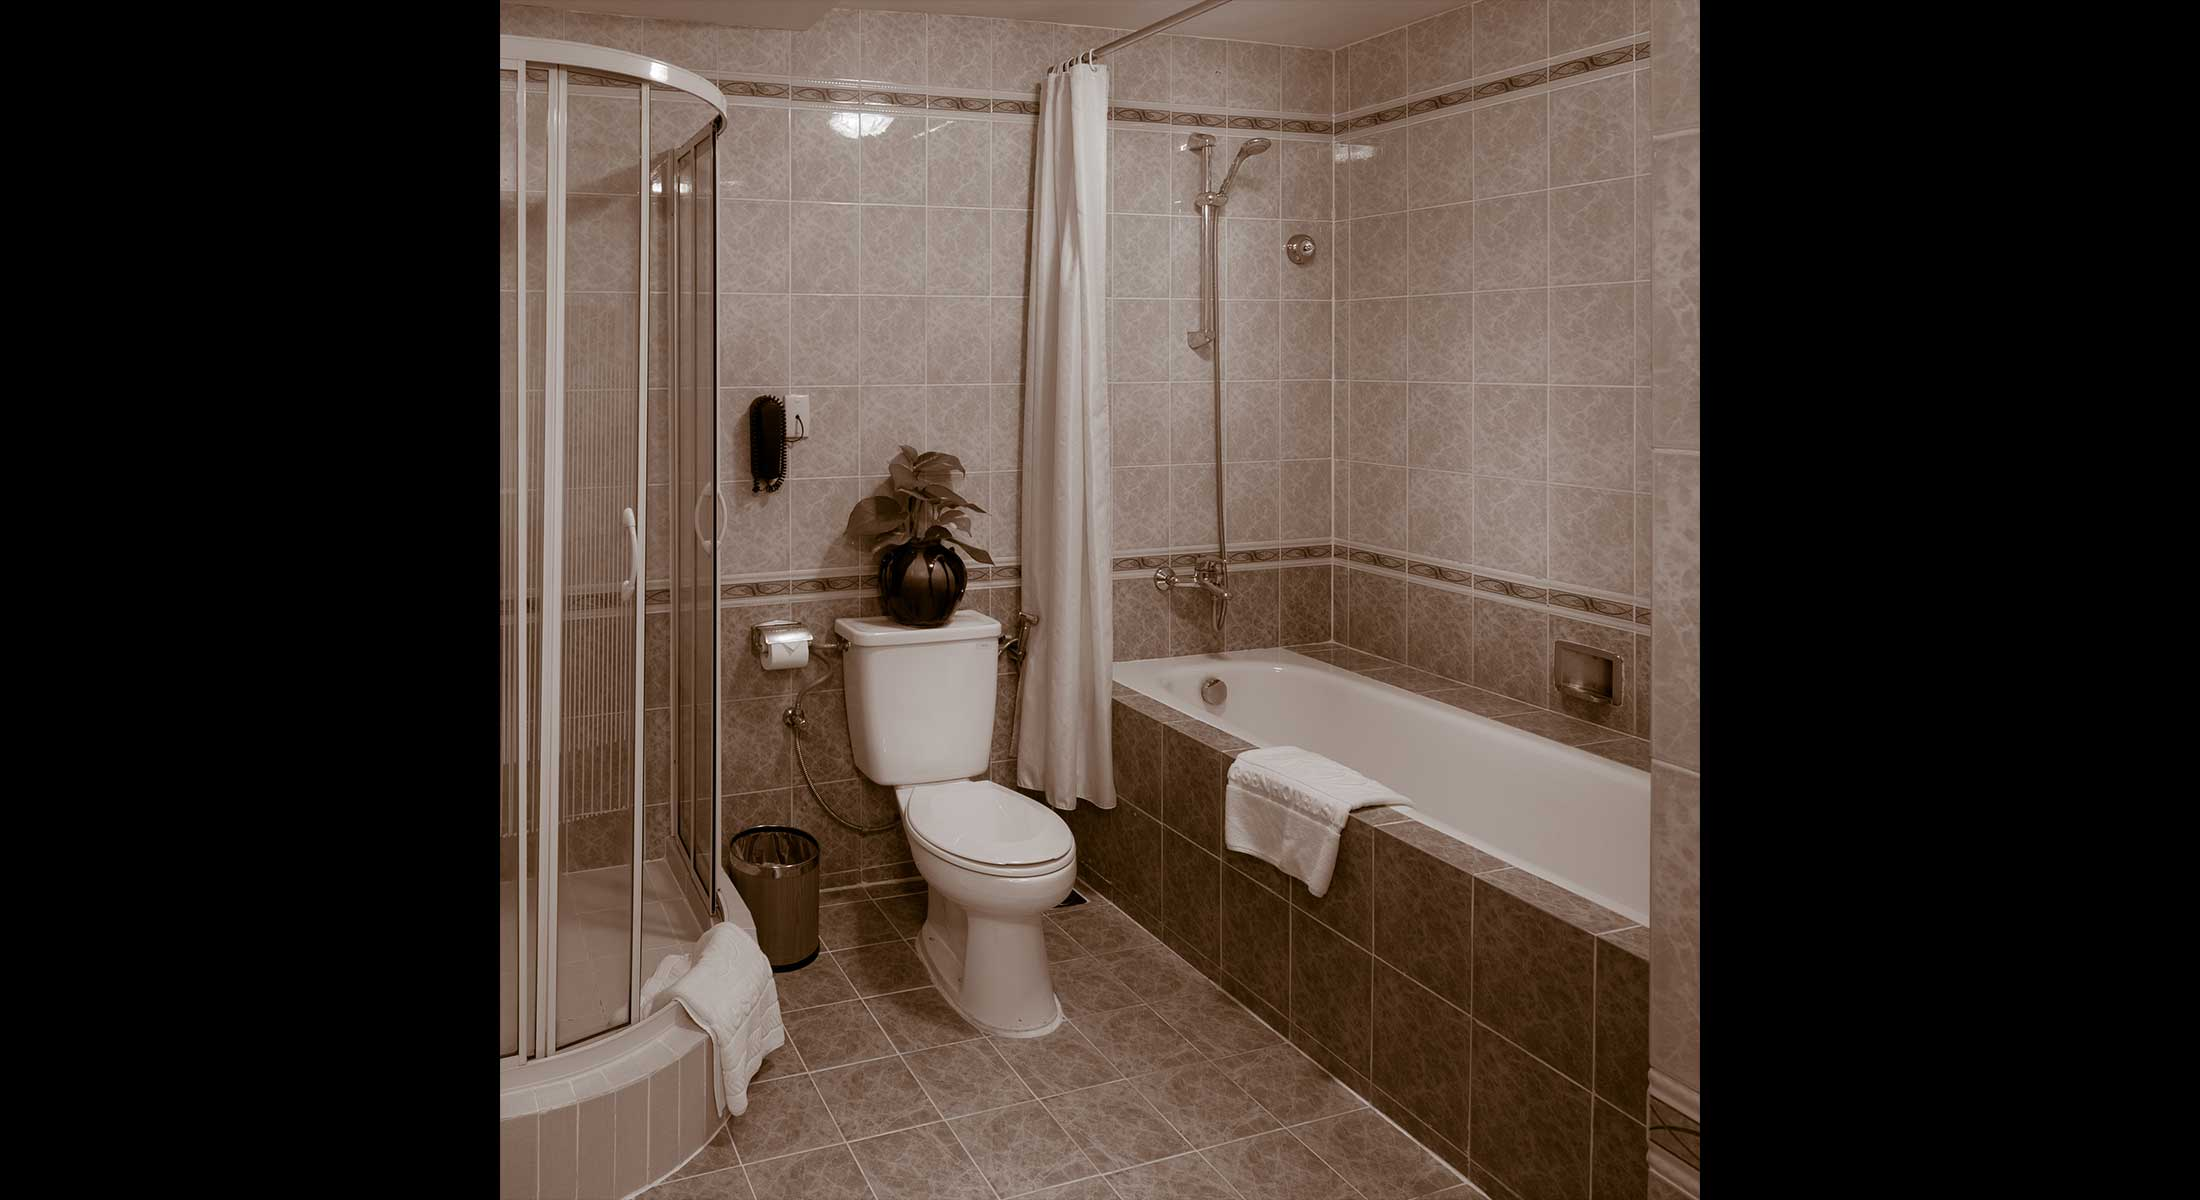 BongSen1_Sepia_BED-Facilities-(33-of-36)